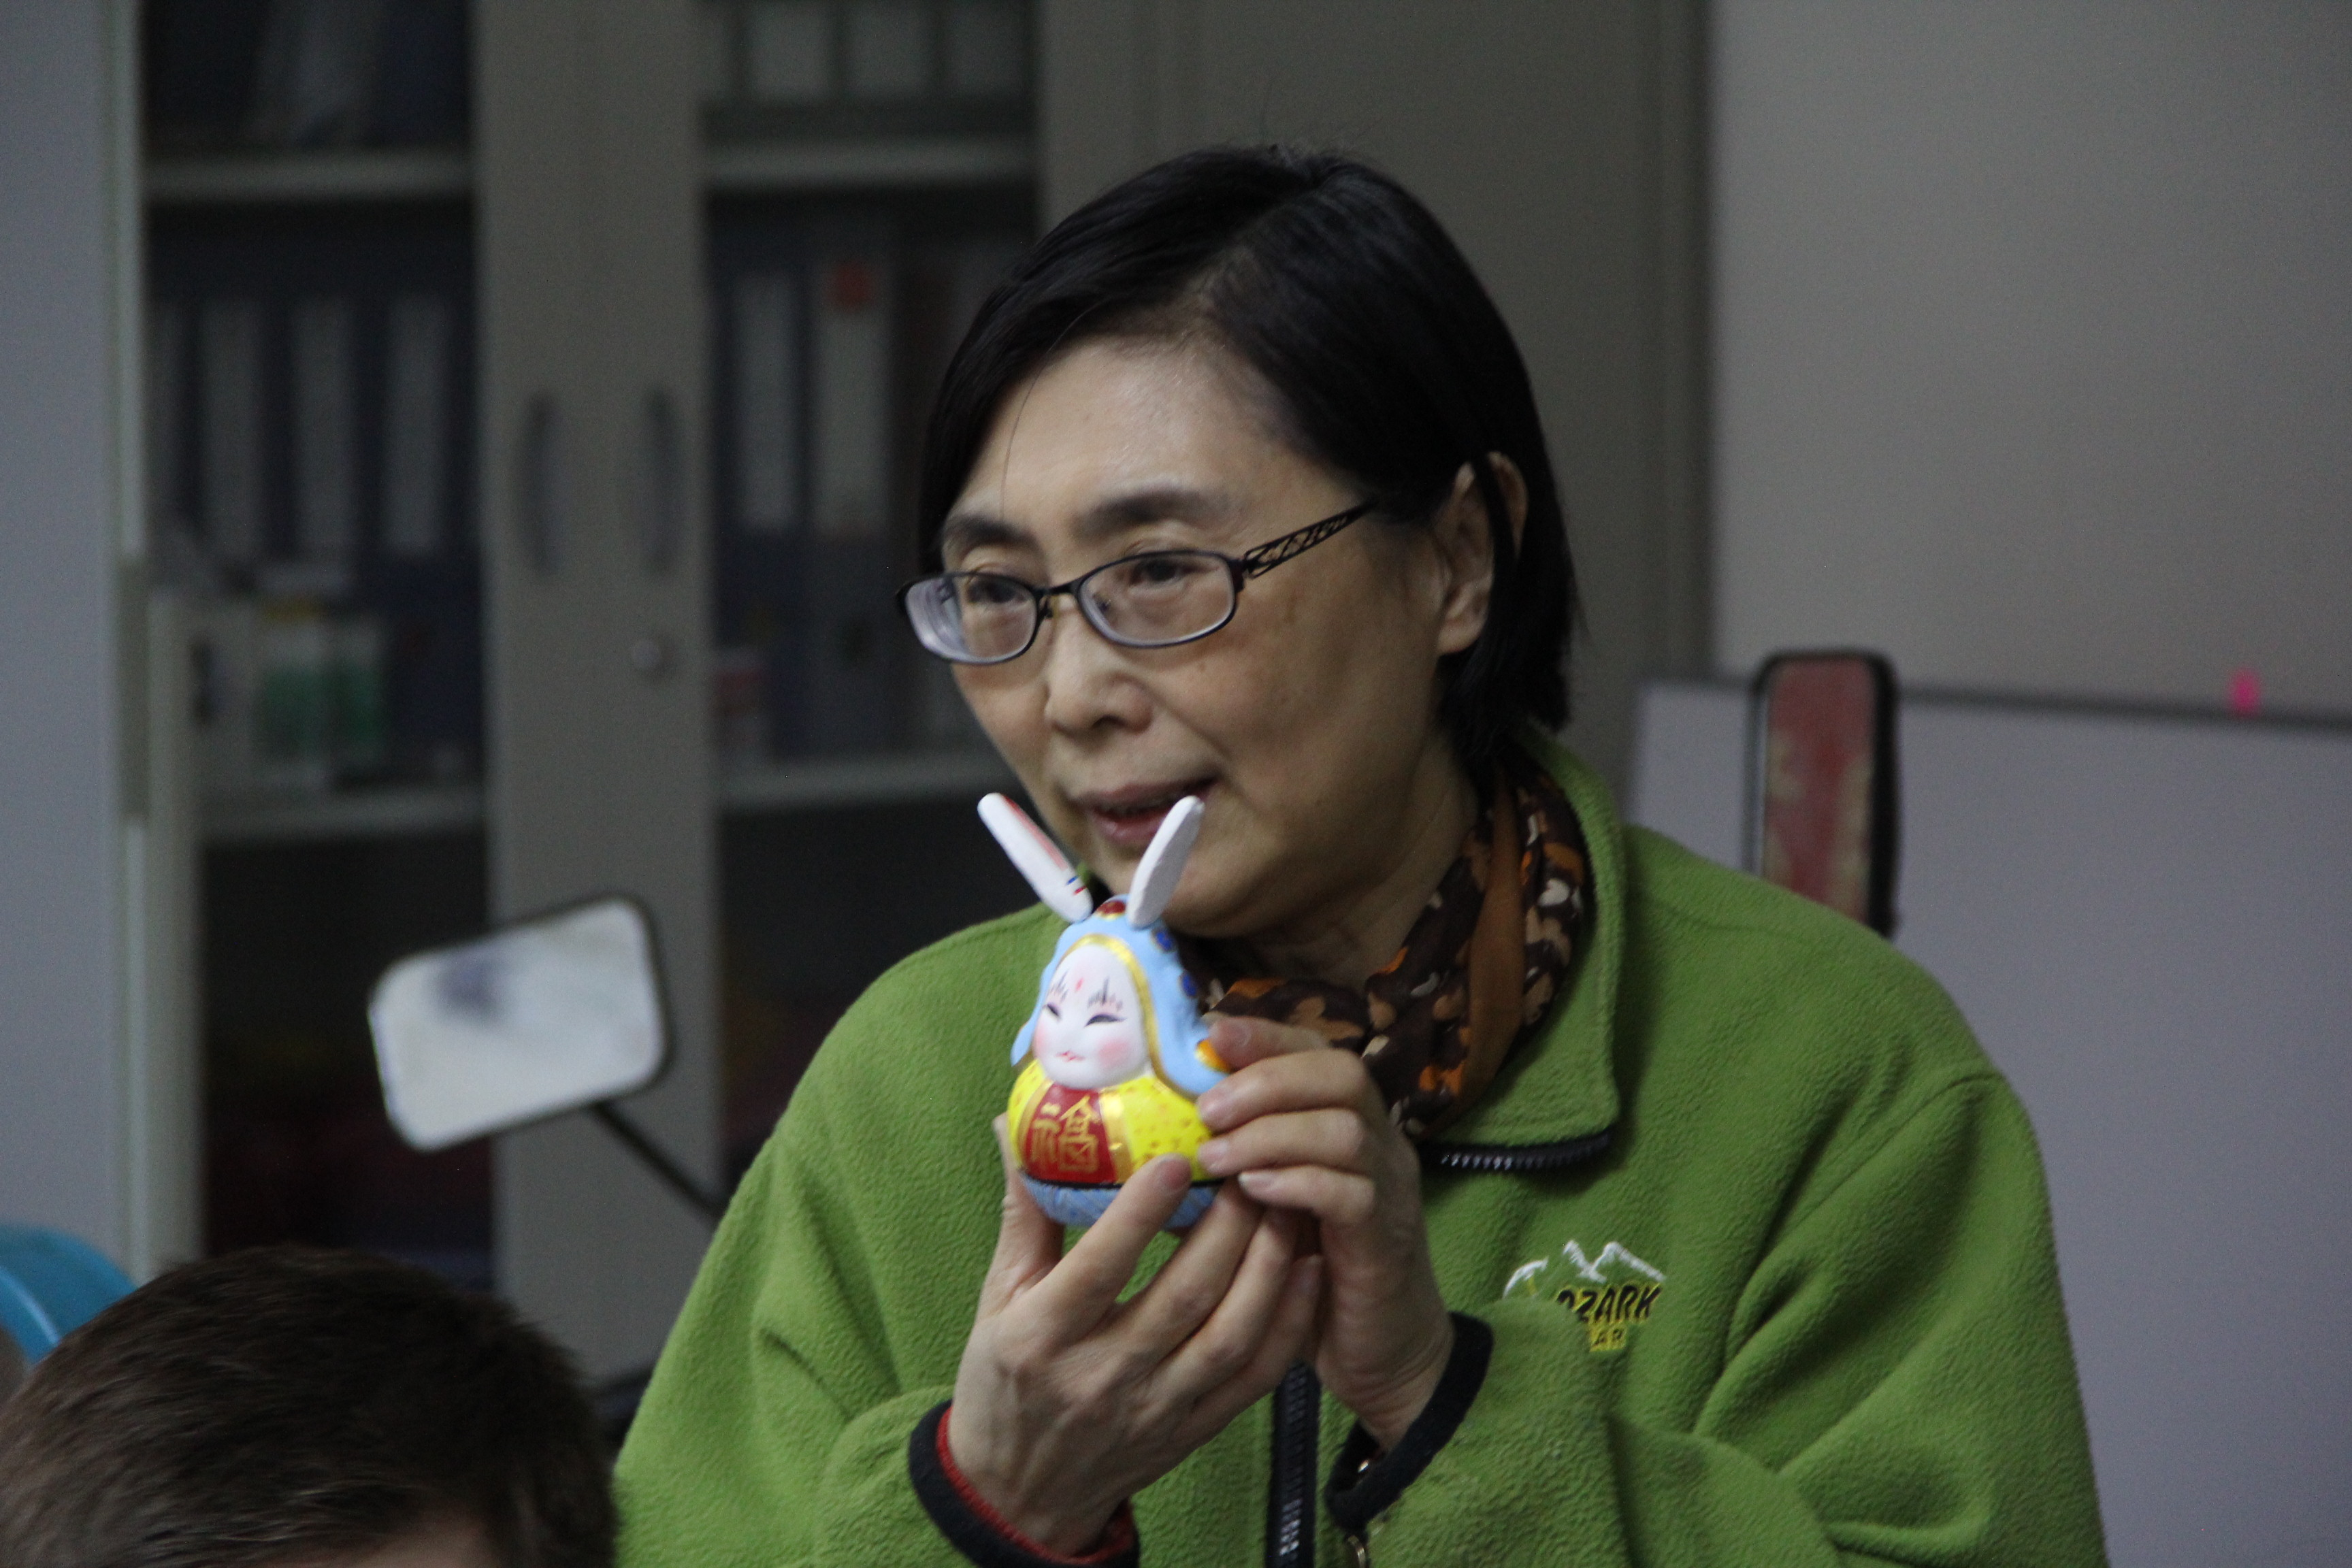 Image of Beijing Tu'er Ye artist with figurine.